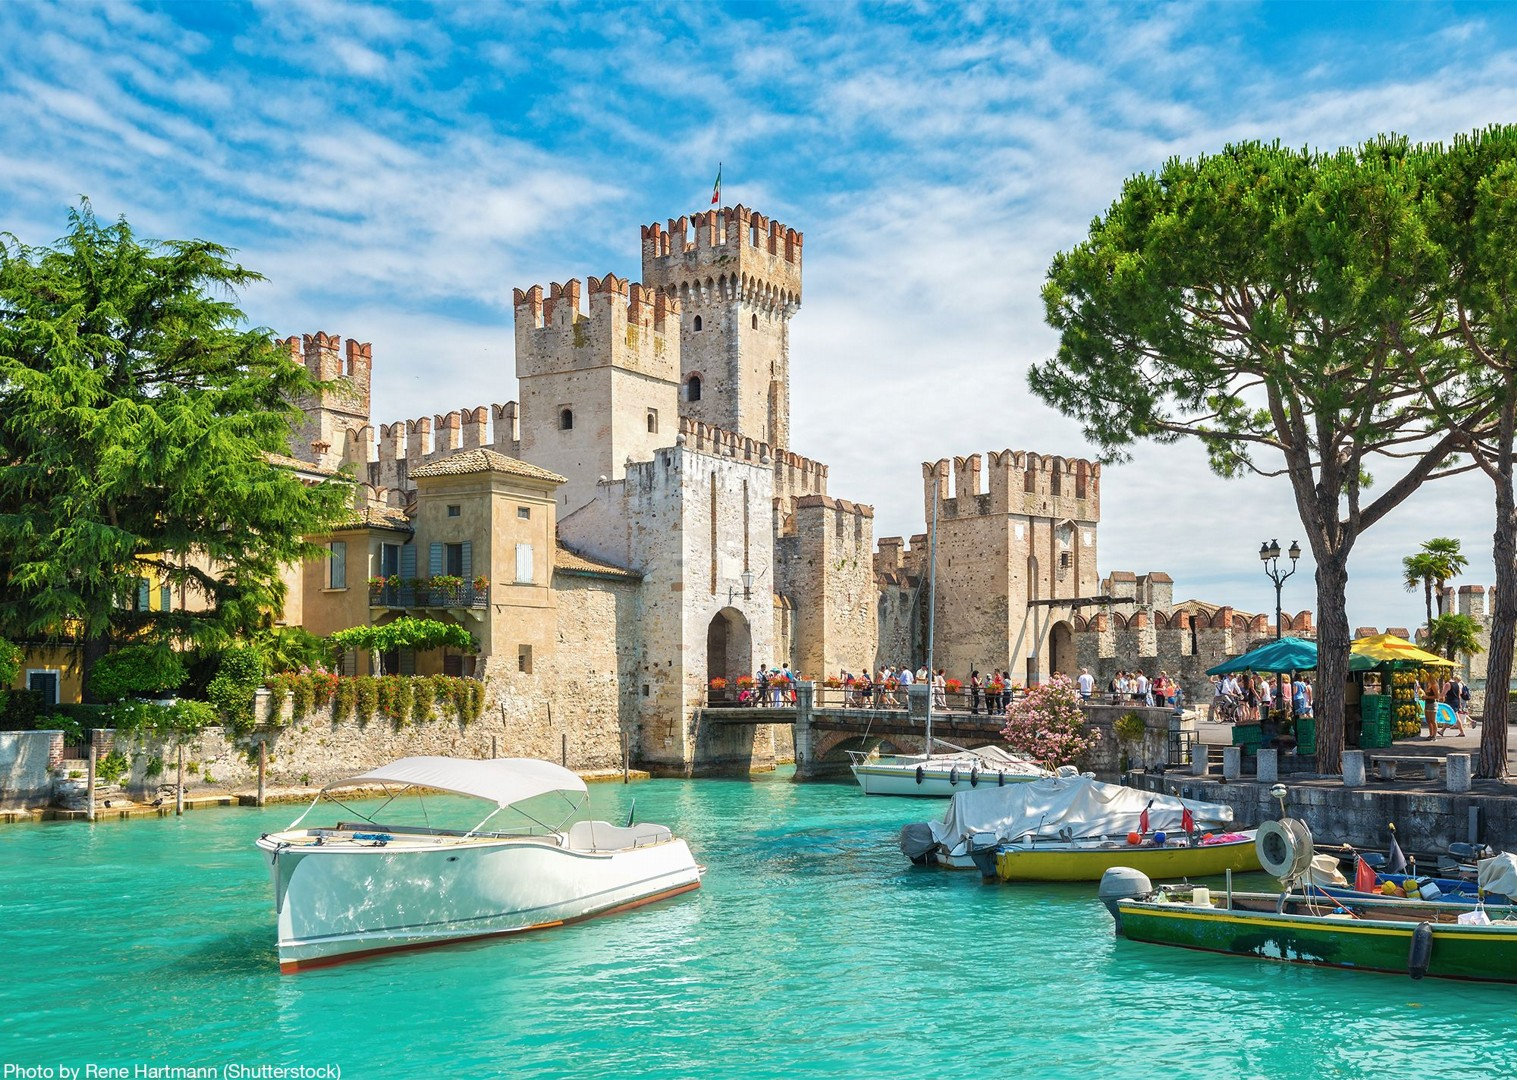 scaligero-castle-sirmione-italy-cycling-tour-self-guided-visit.jpg - Italy - Lake Garda to Venice - Self-Guided Leisure Cycling Holiday - Leisure Cycling